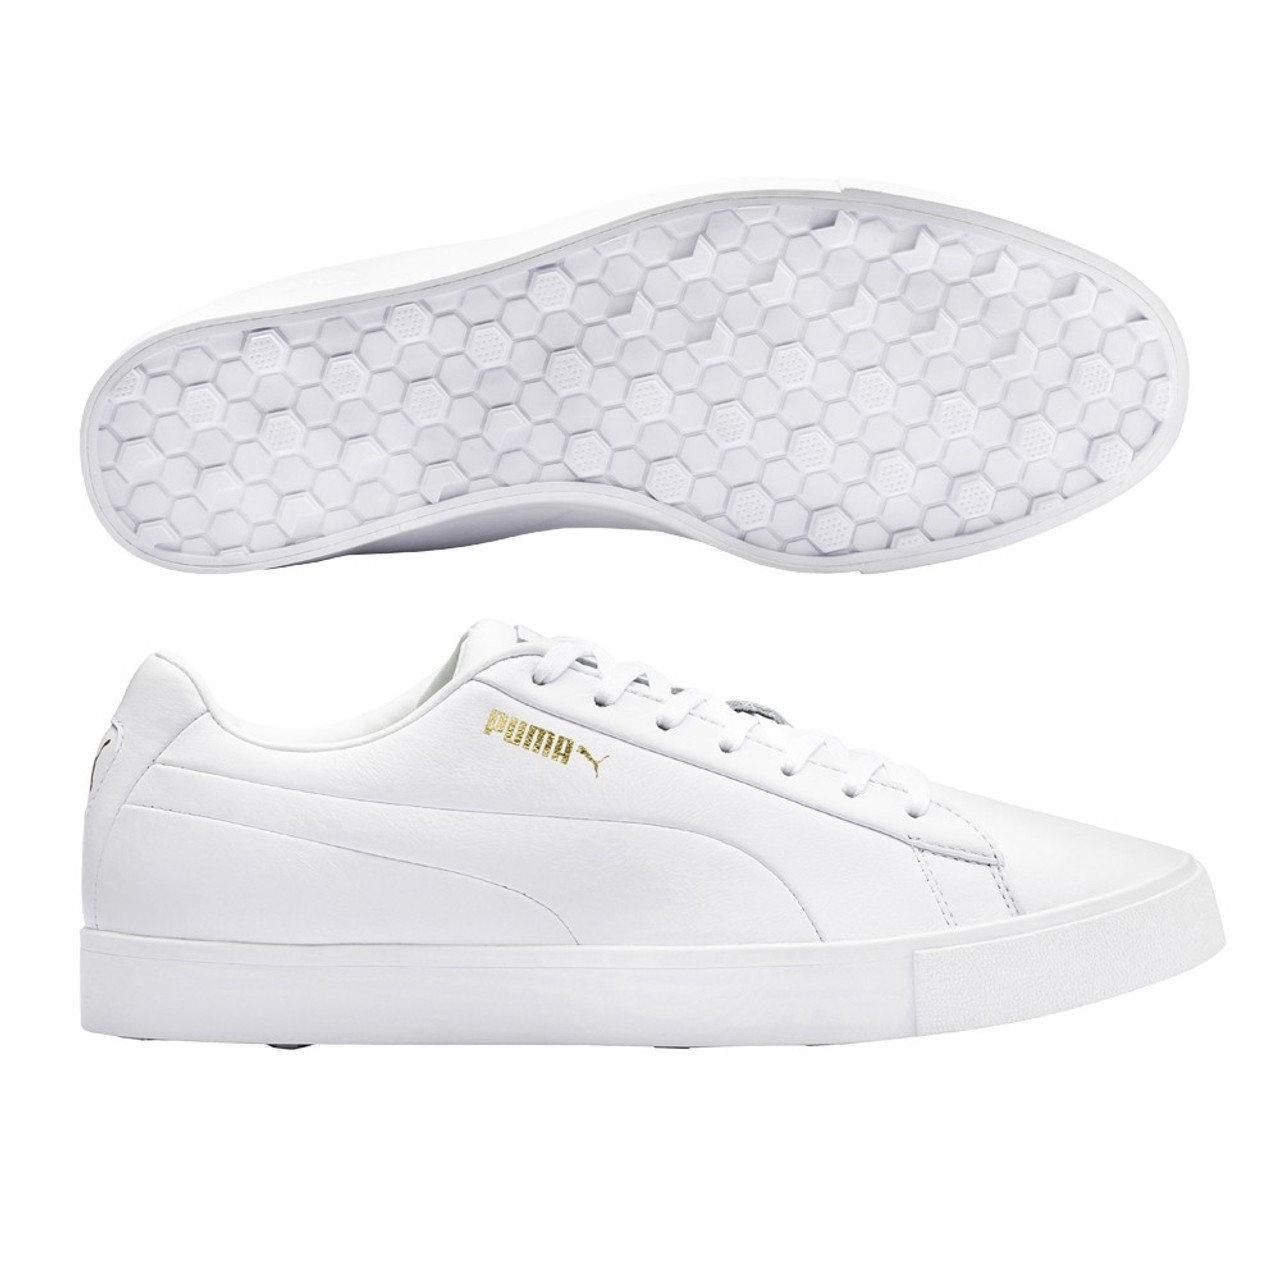 Puma Original G Golf Shoes - White